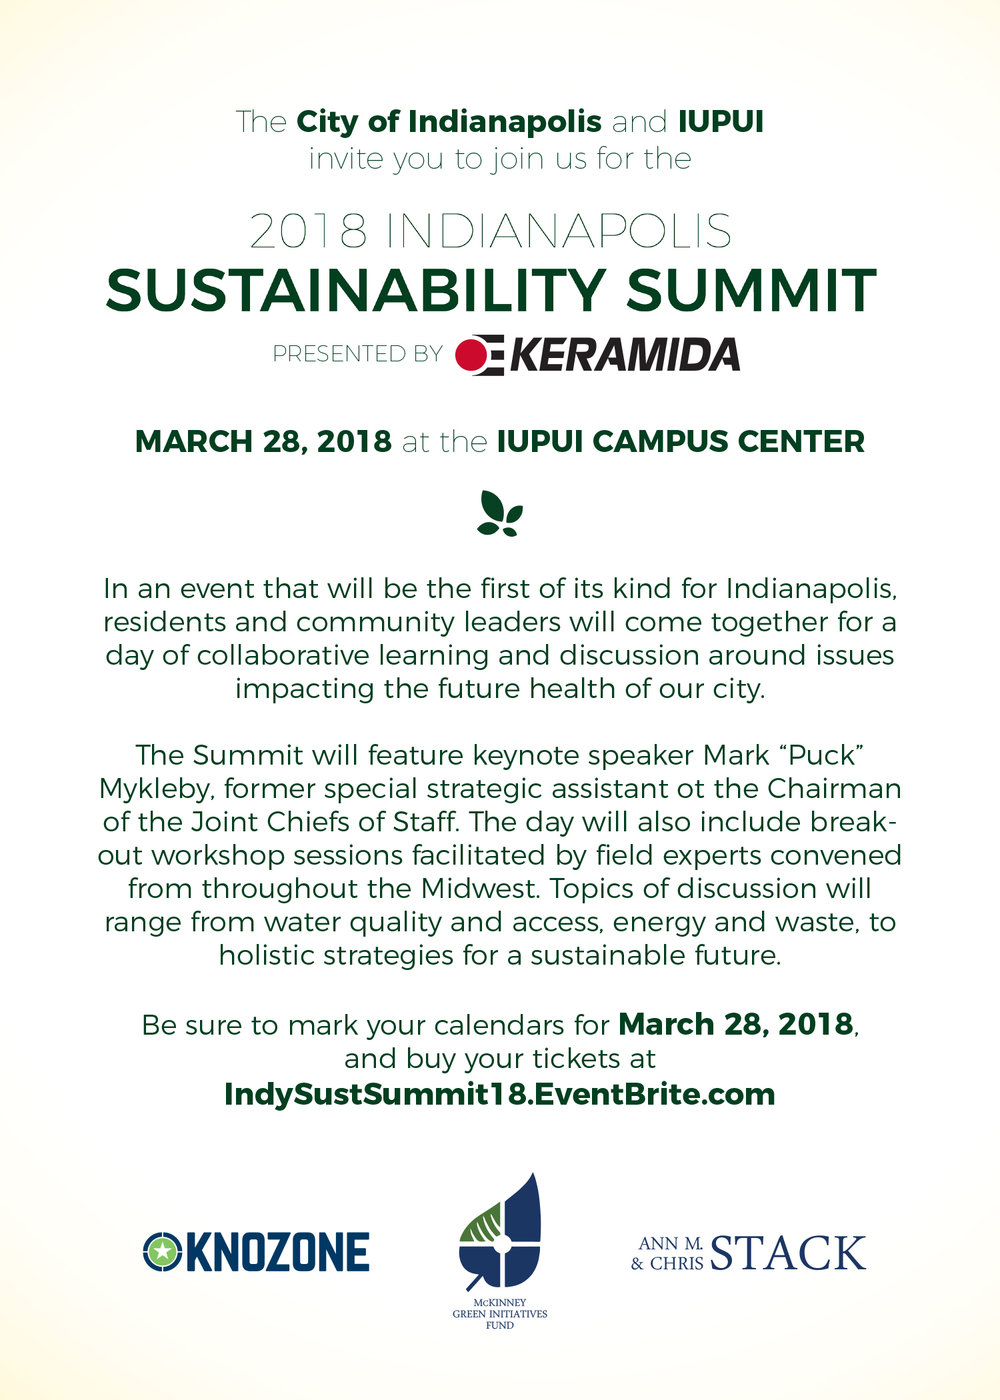 2018-Indianapolis-Sustainability-Summit.jpg